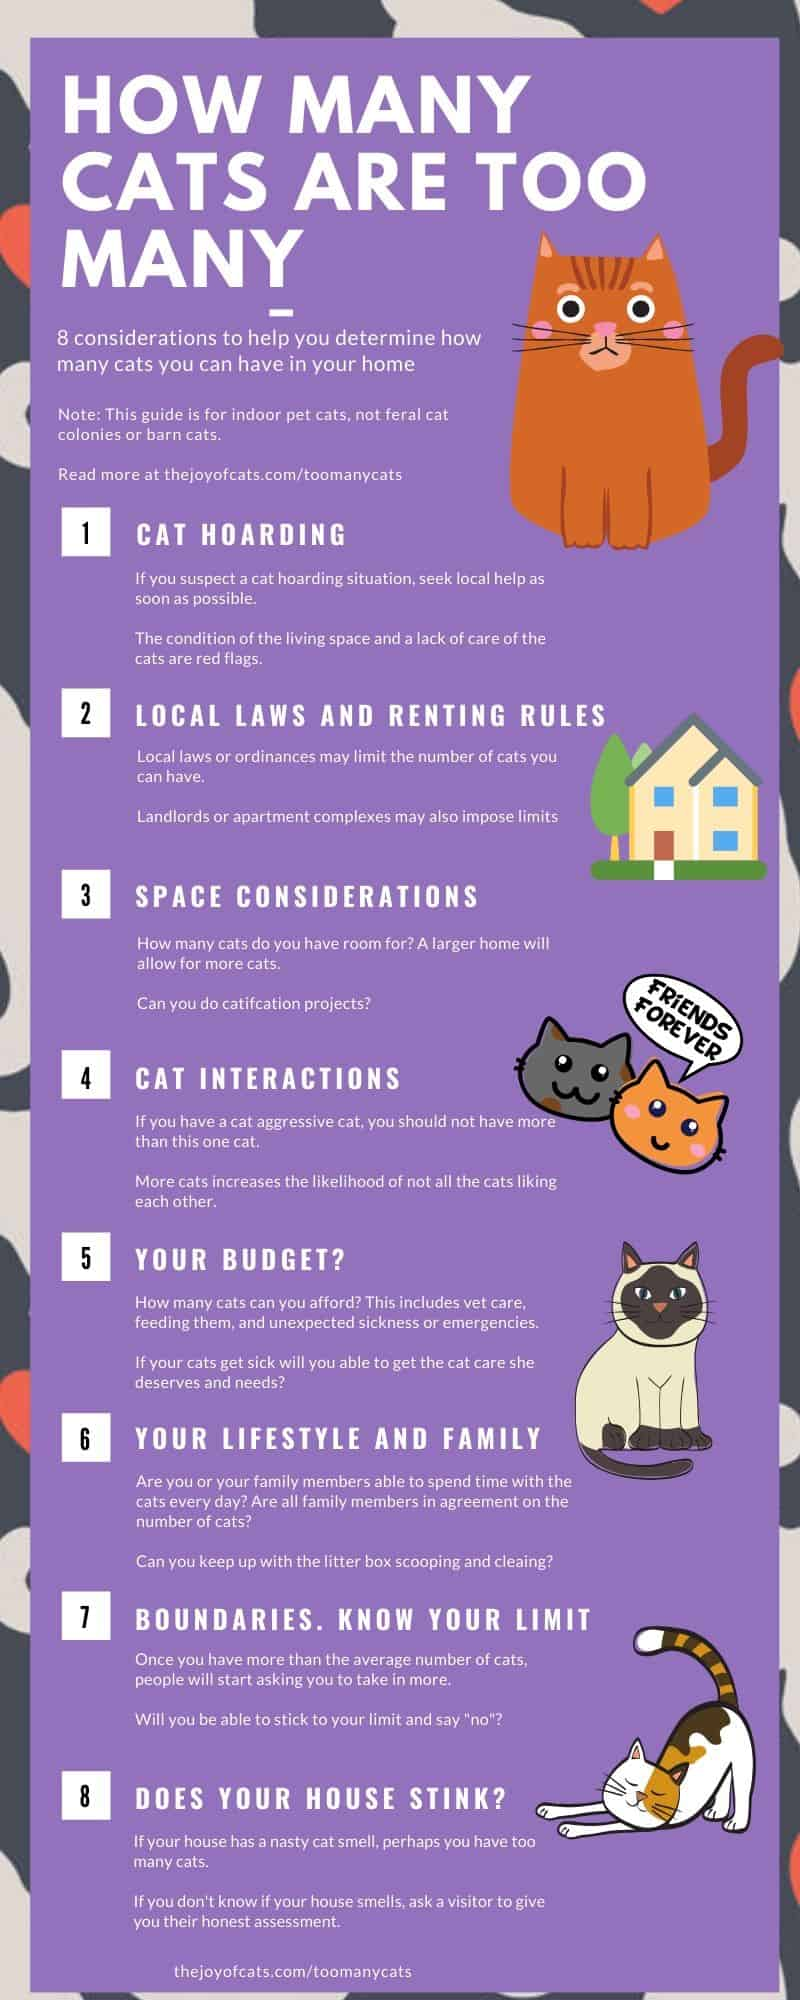 infographic listing the 8 considerations for how many cats are too many